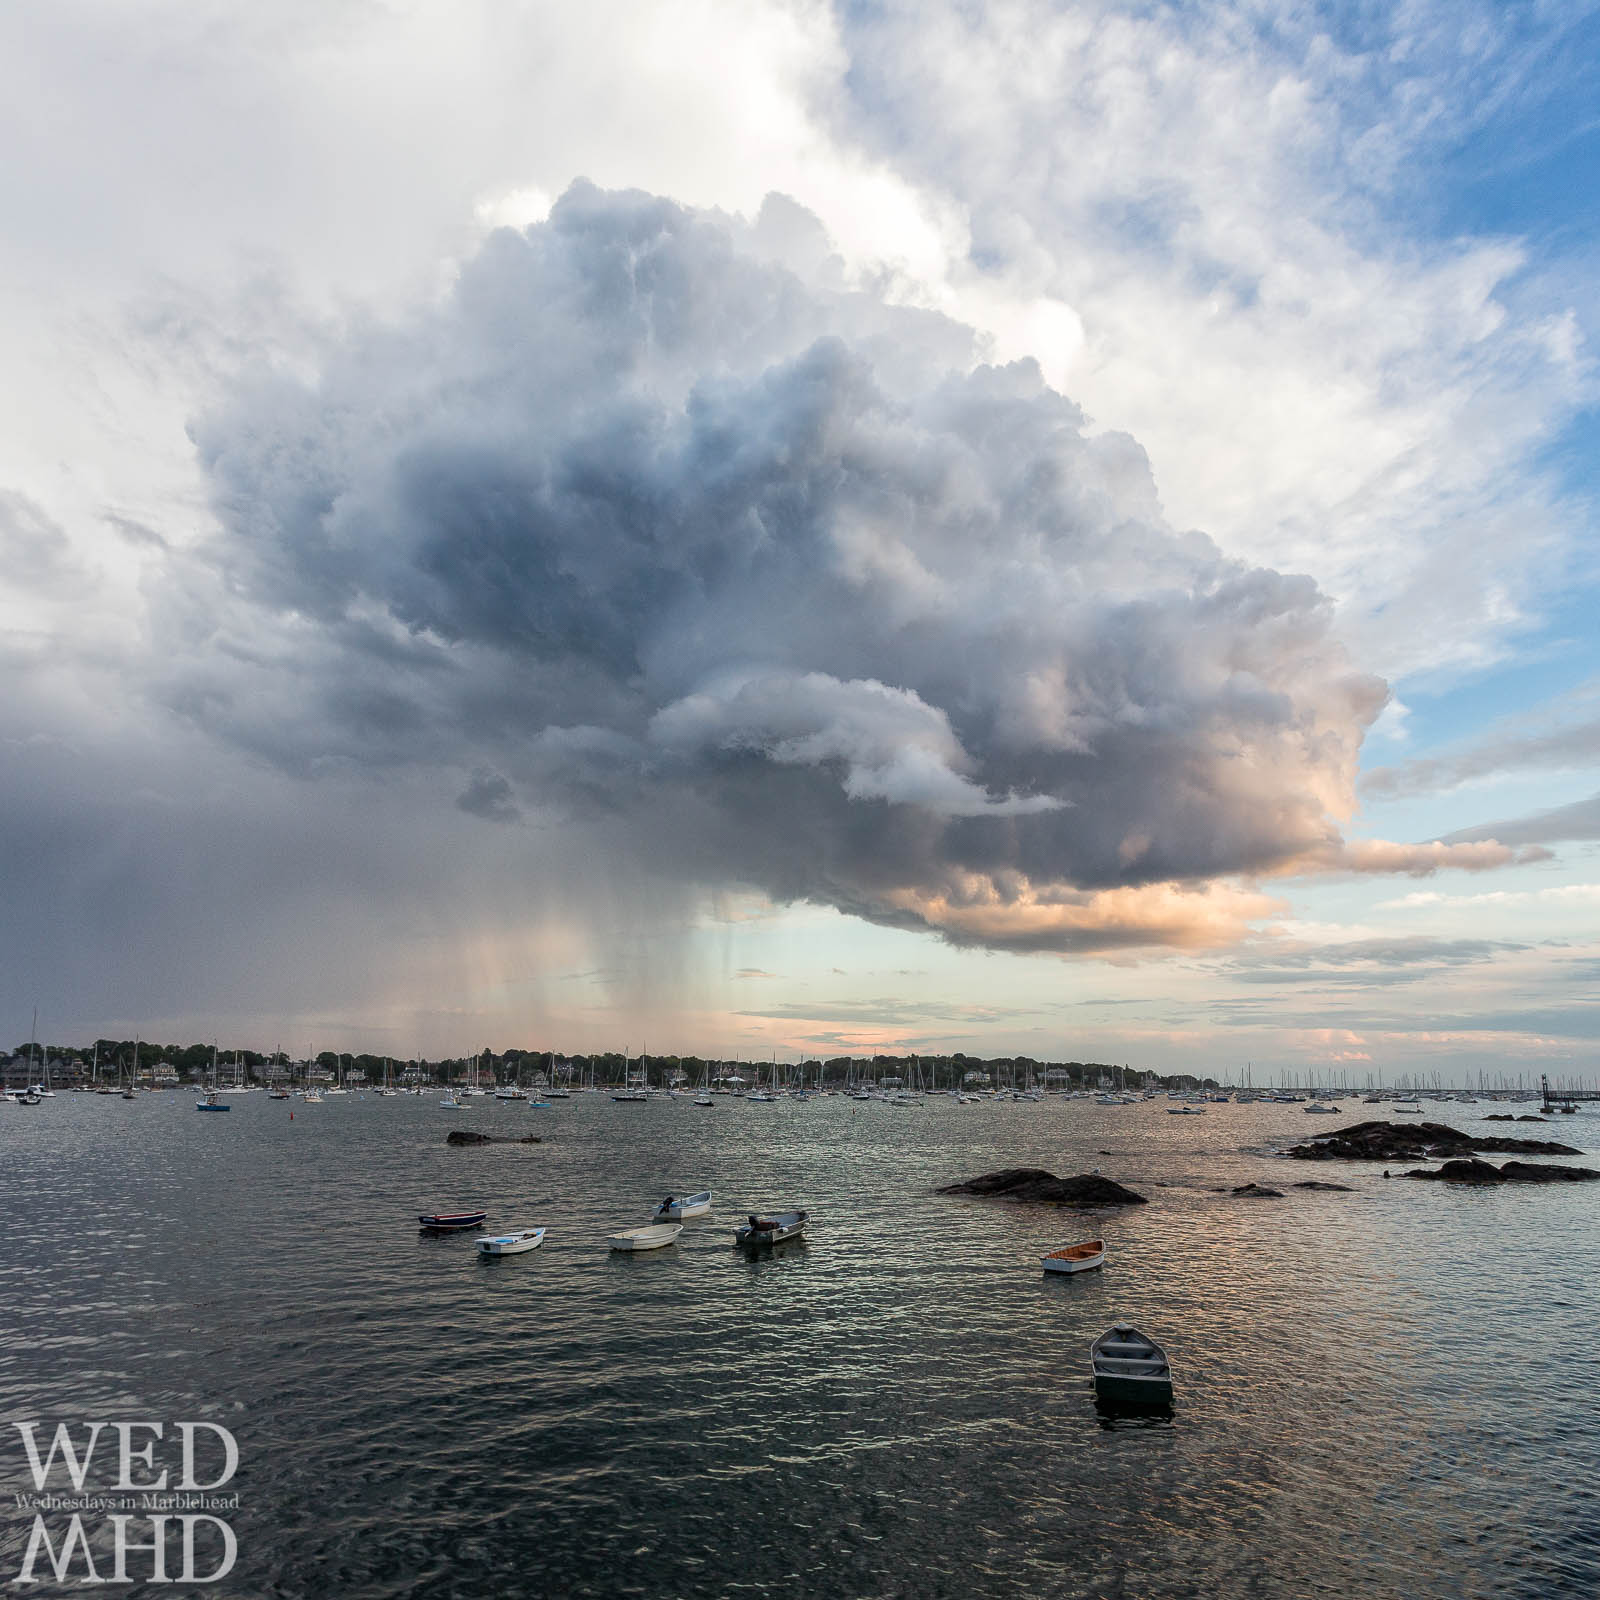 Marblehead Neck is drenched by a rain cloud at sunset whose dramatic structure draws in the viewer's eye